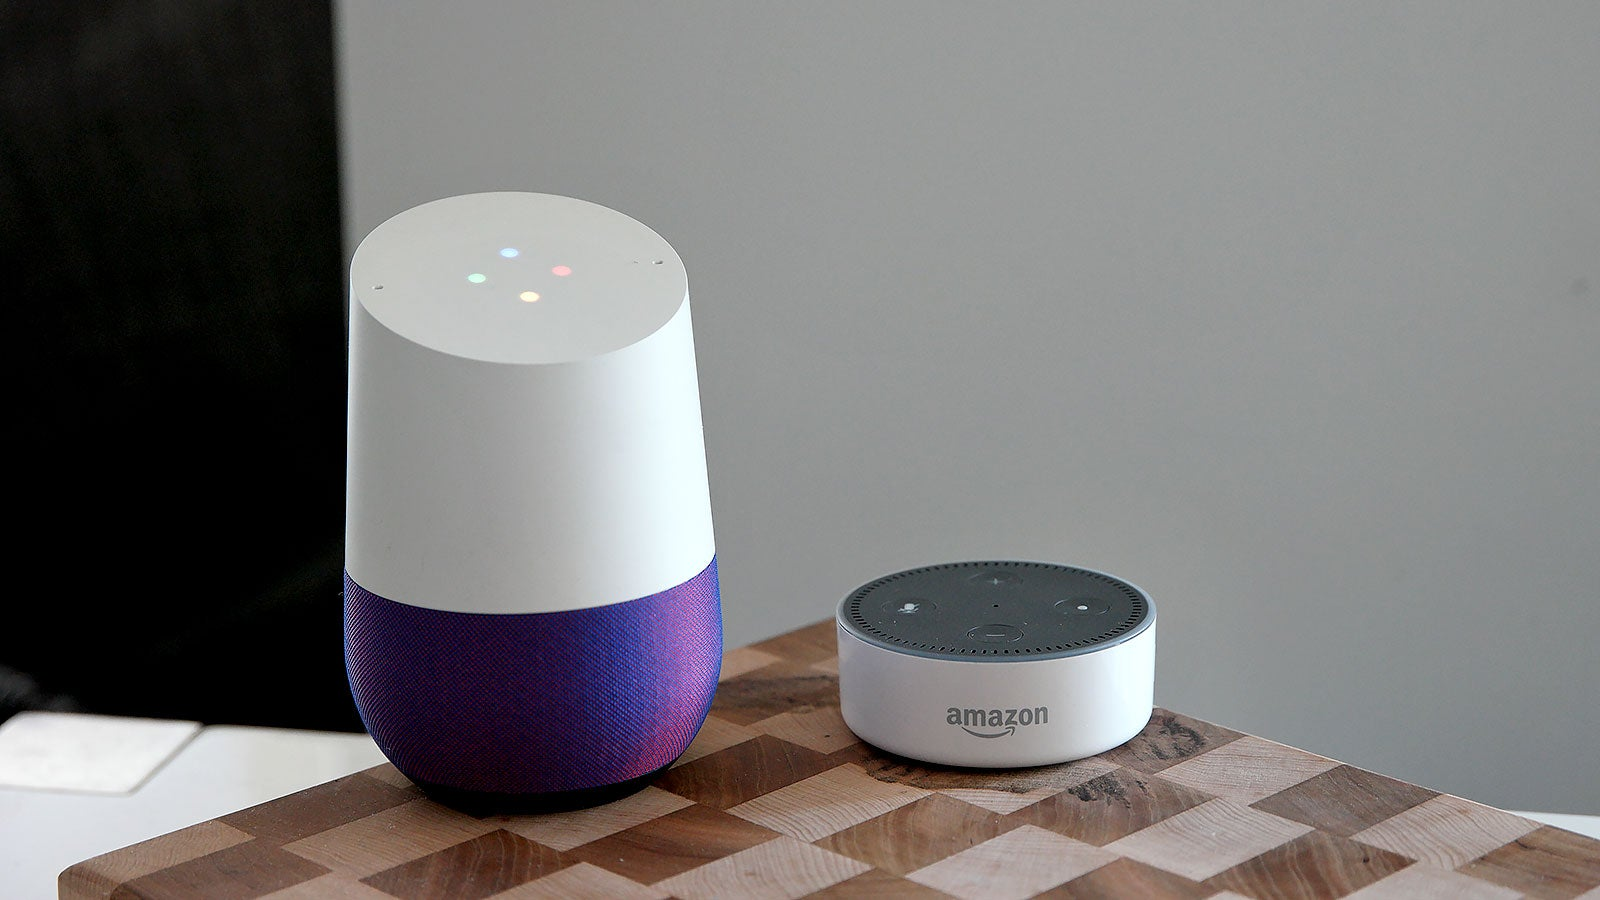 amazon amazon-echo consumer-tech digital-assistants google google-assistant google-home google-wins-its-first-big-smart-speaker-battle smart-speakers